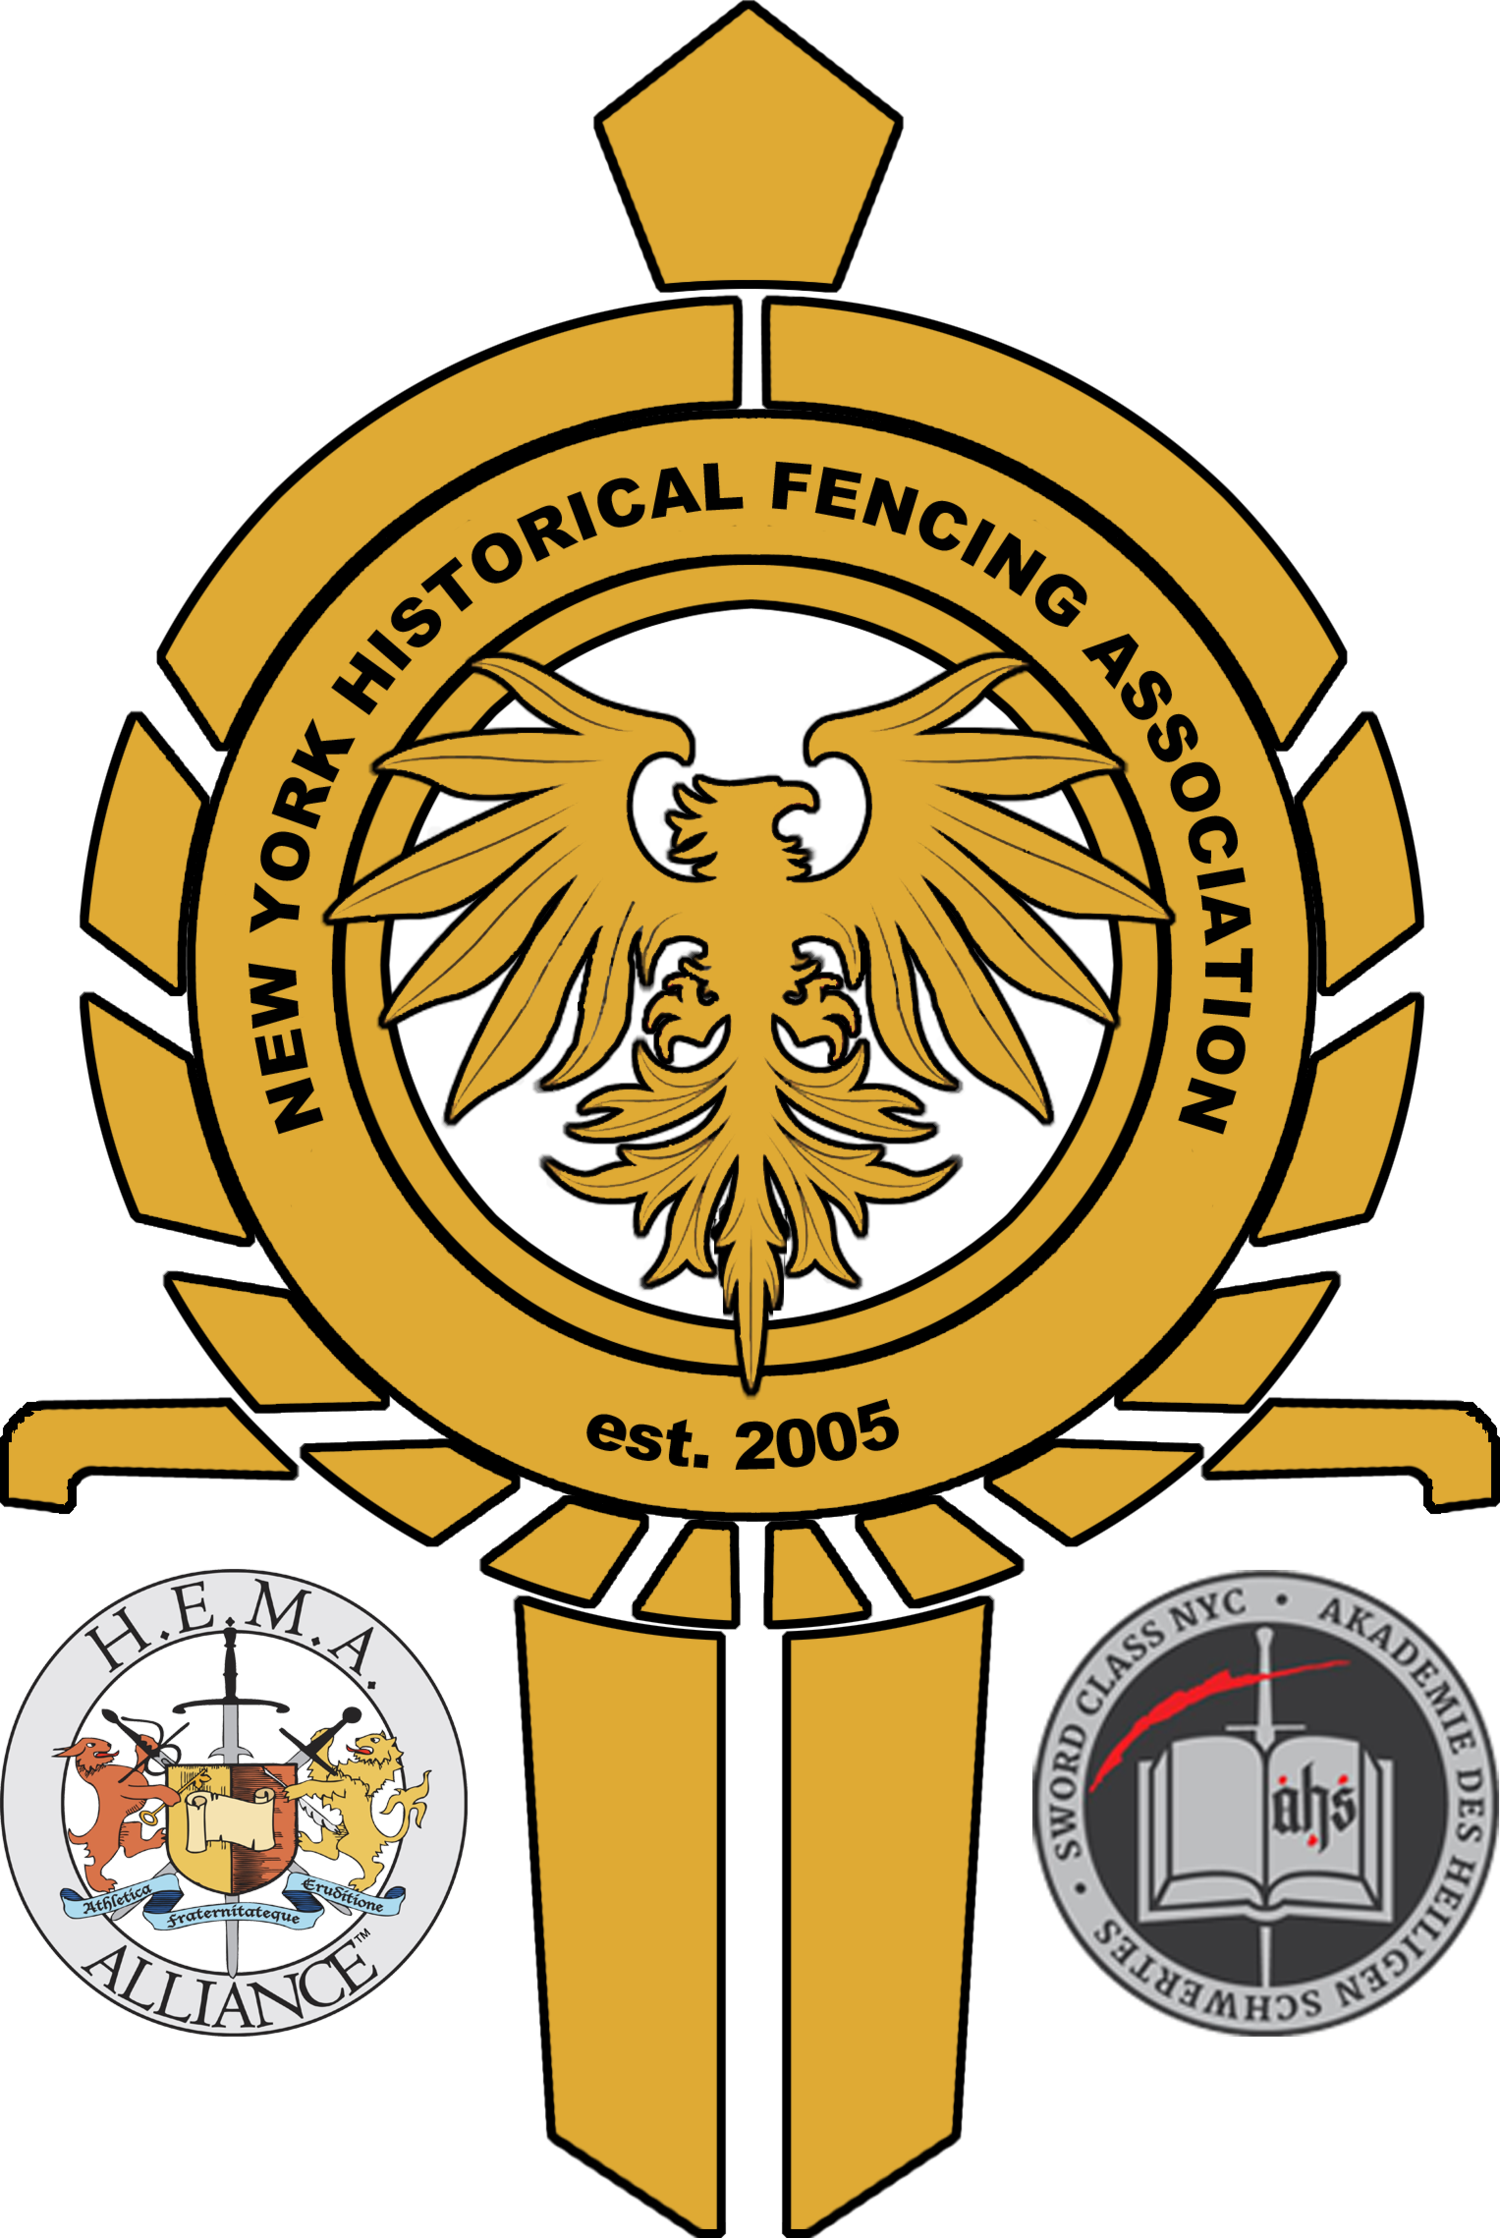 New York Historical Fencing Association